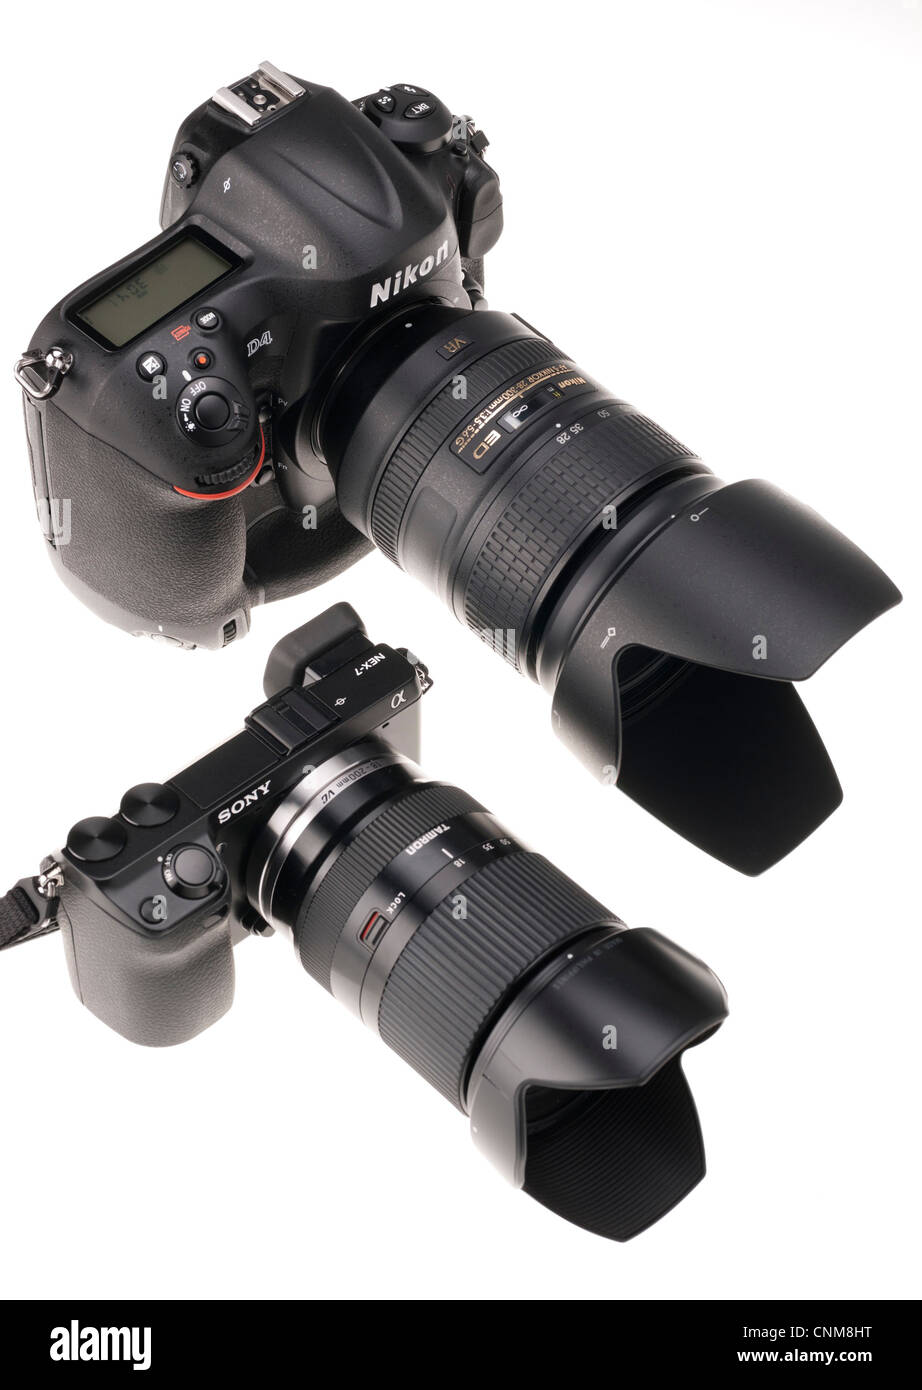 Photographic equipment - Nikon D4 with 28-300mm lens seen beside